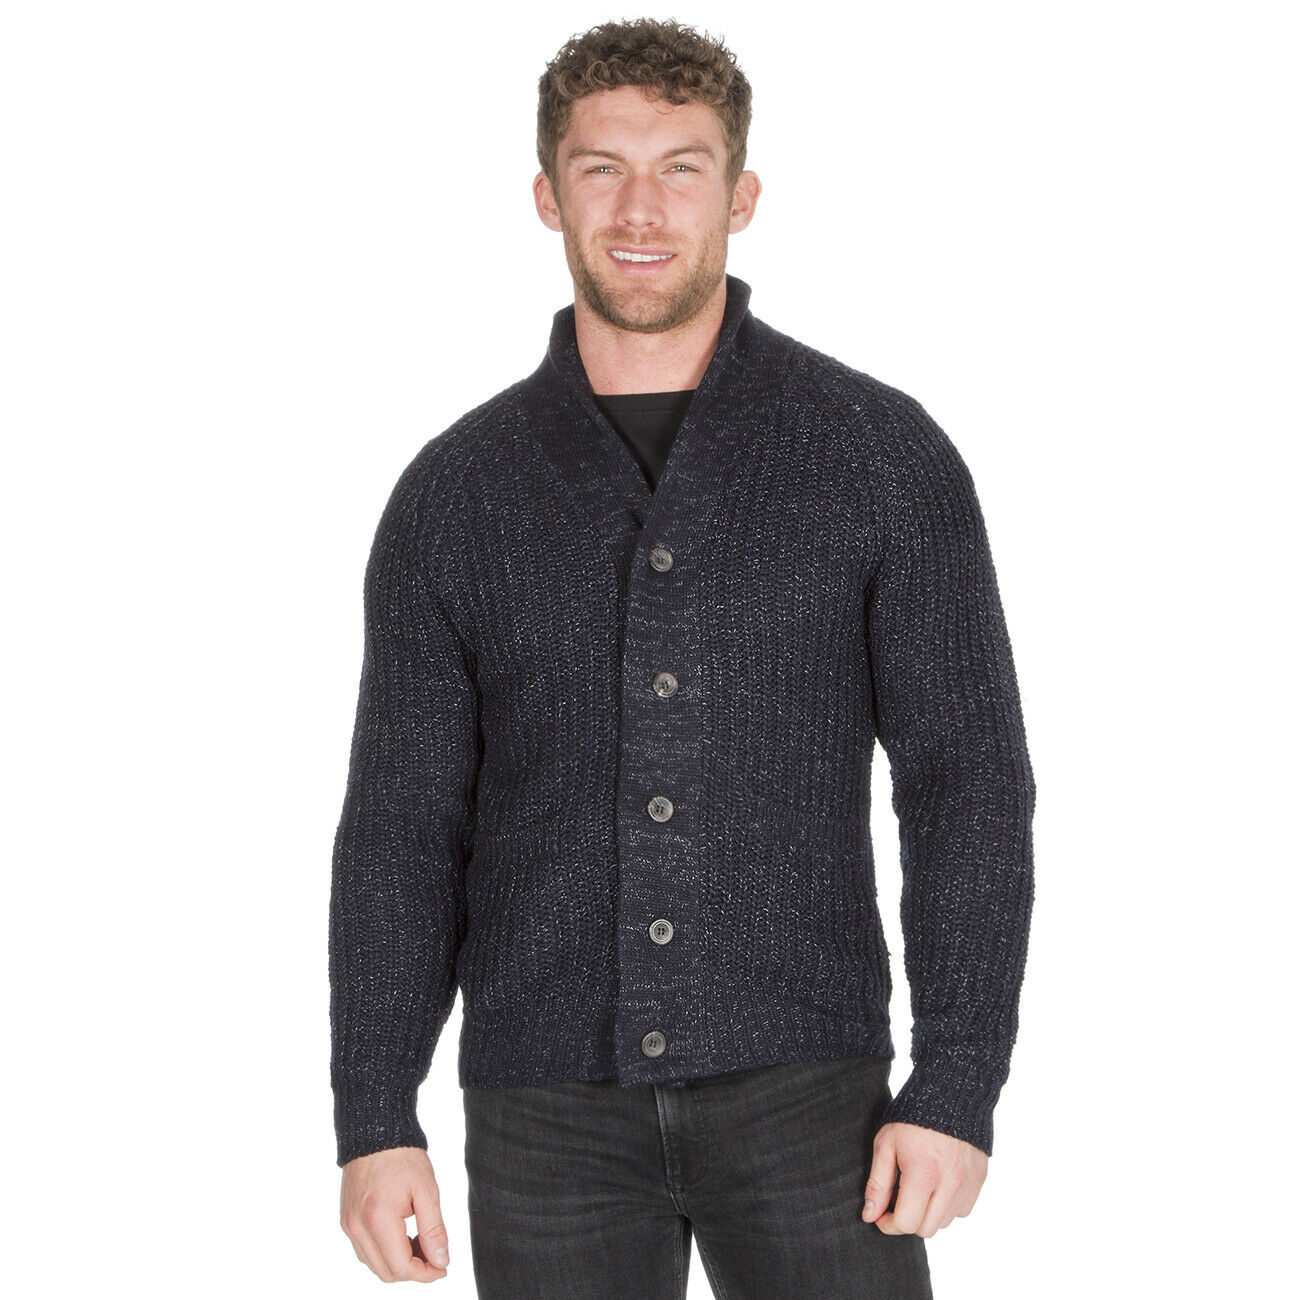 Mens Knitted Cardigan with Buttons Shawl Collar